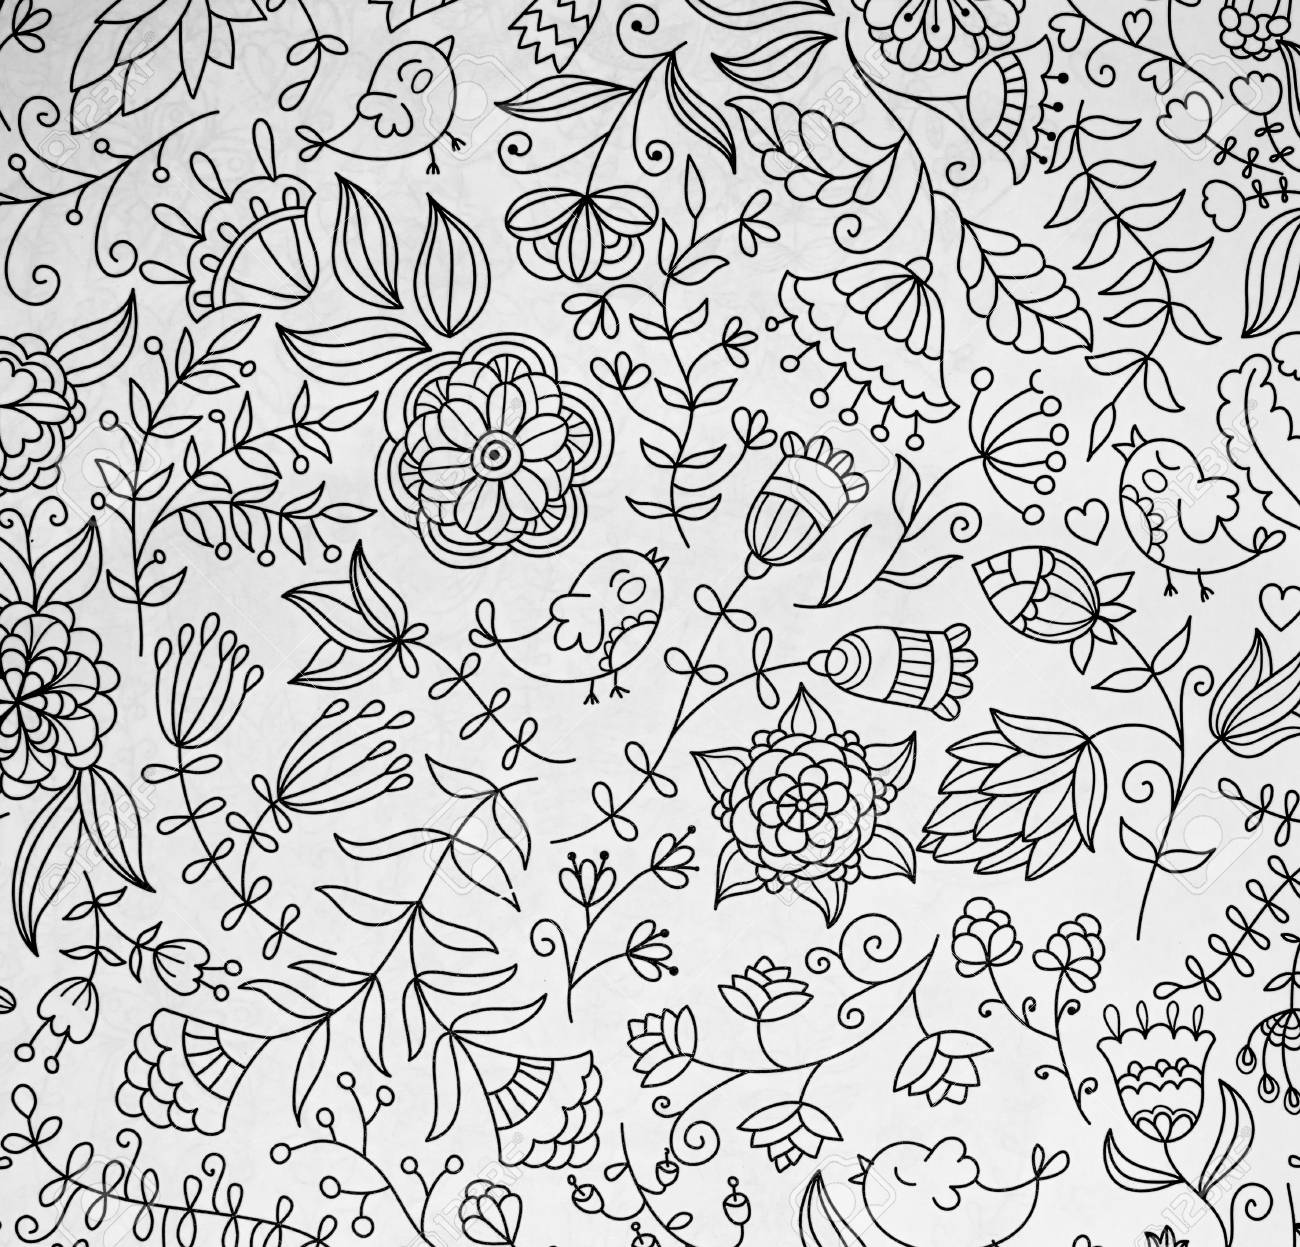 Abstraction Coloring Pages For Adultsstress Relief Top View Closeup Stock Photo